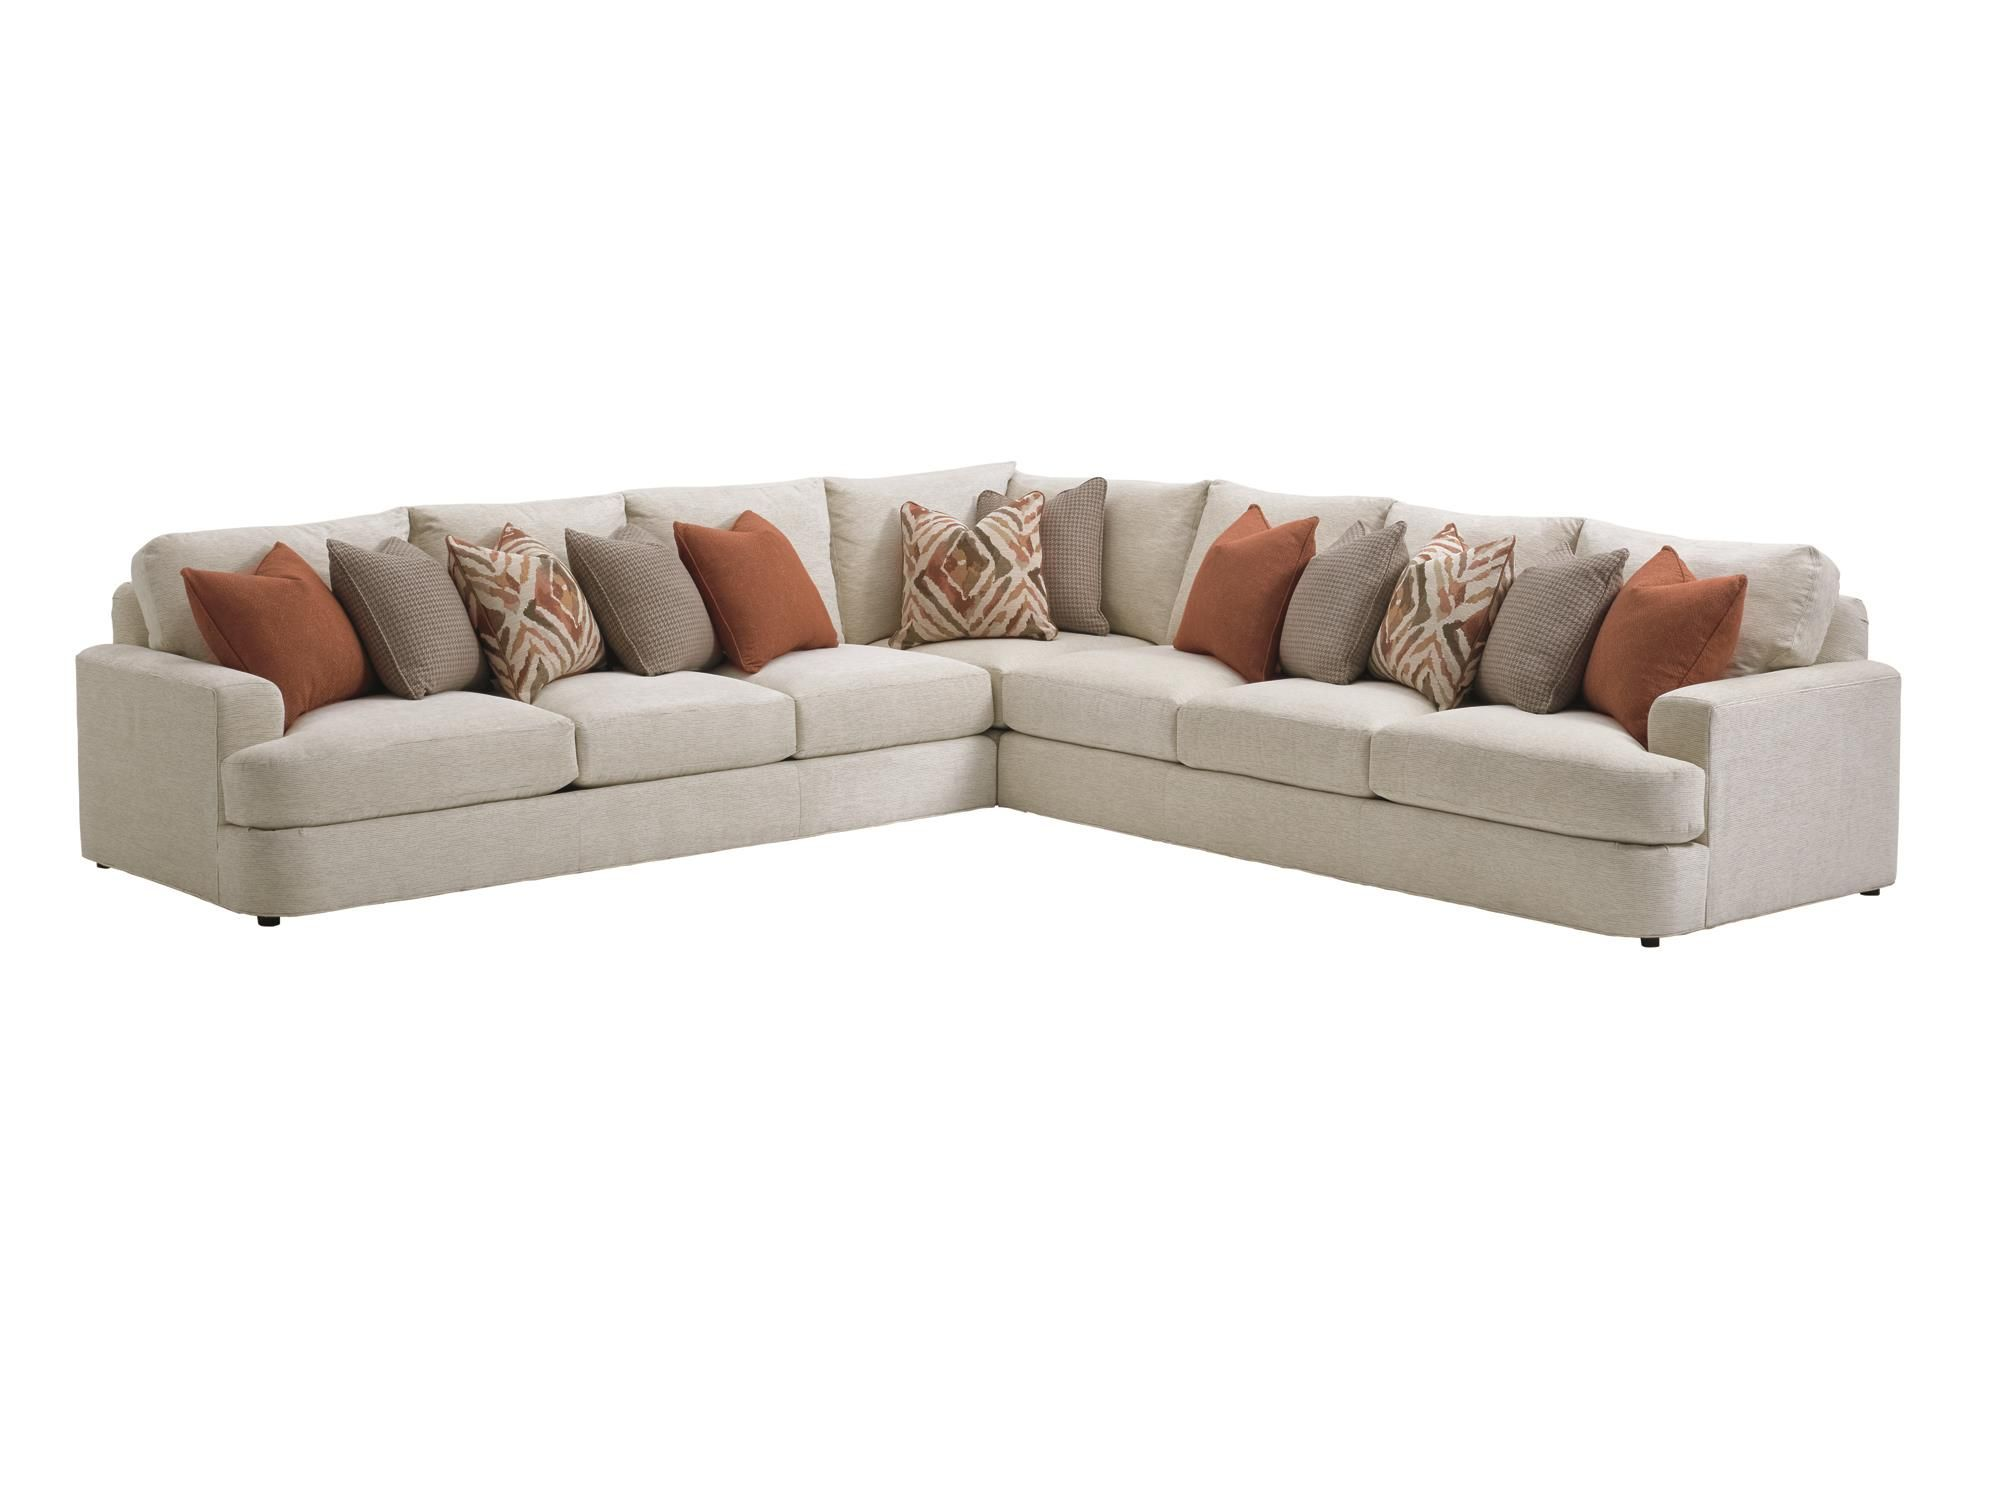 LAUREL CANYON Halandale Two Piece Sectional Sofa with Toss Pillows ...